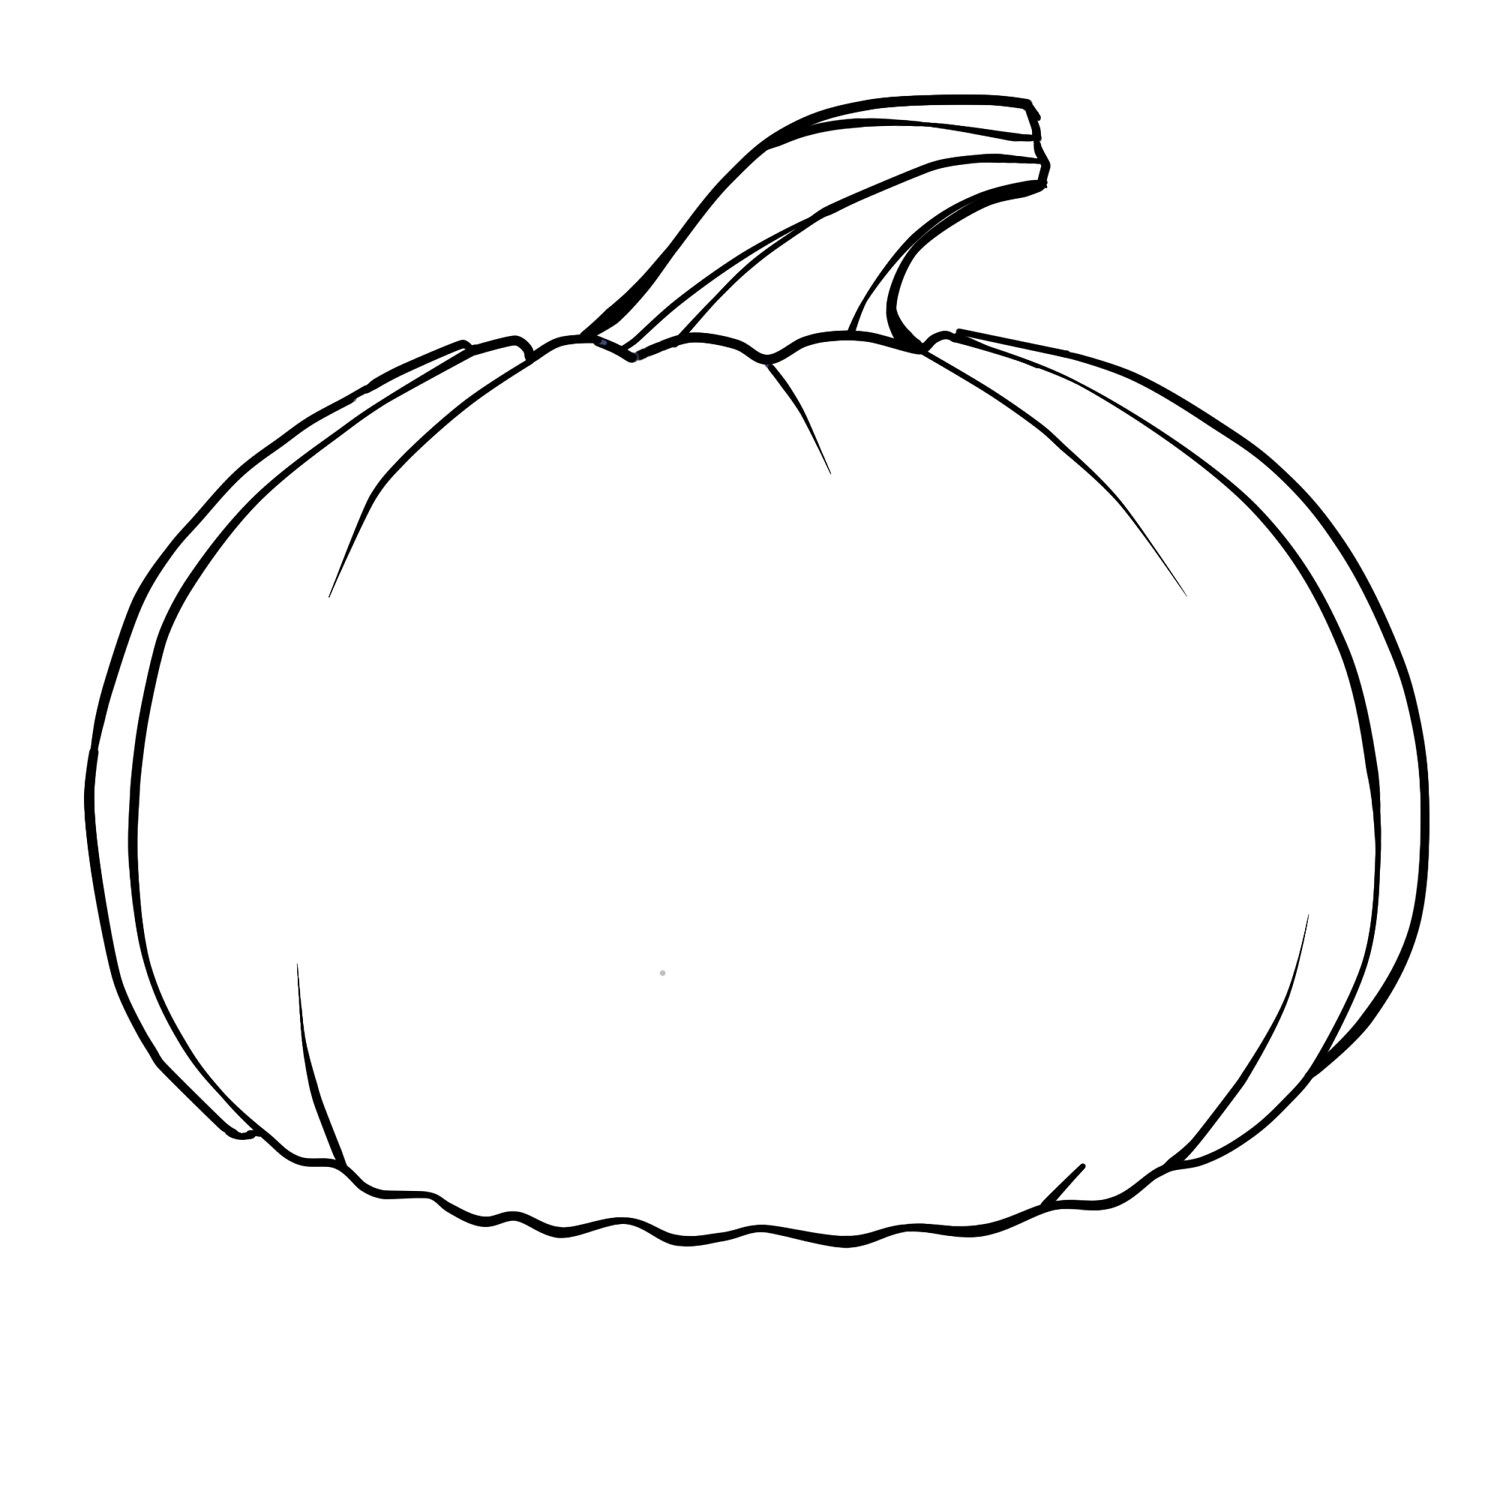 4 Images of Free Printable Pumpkin Coloring Pages